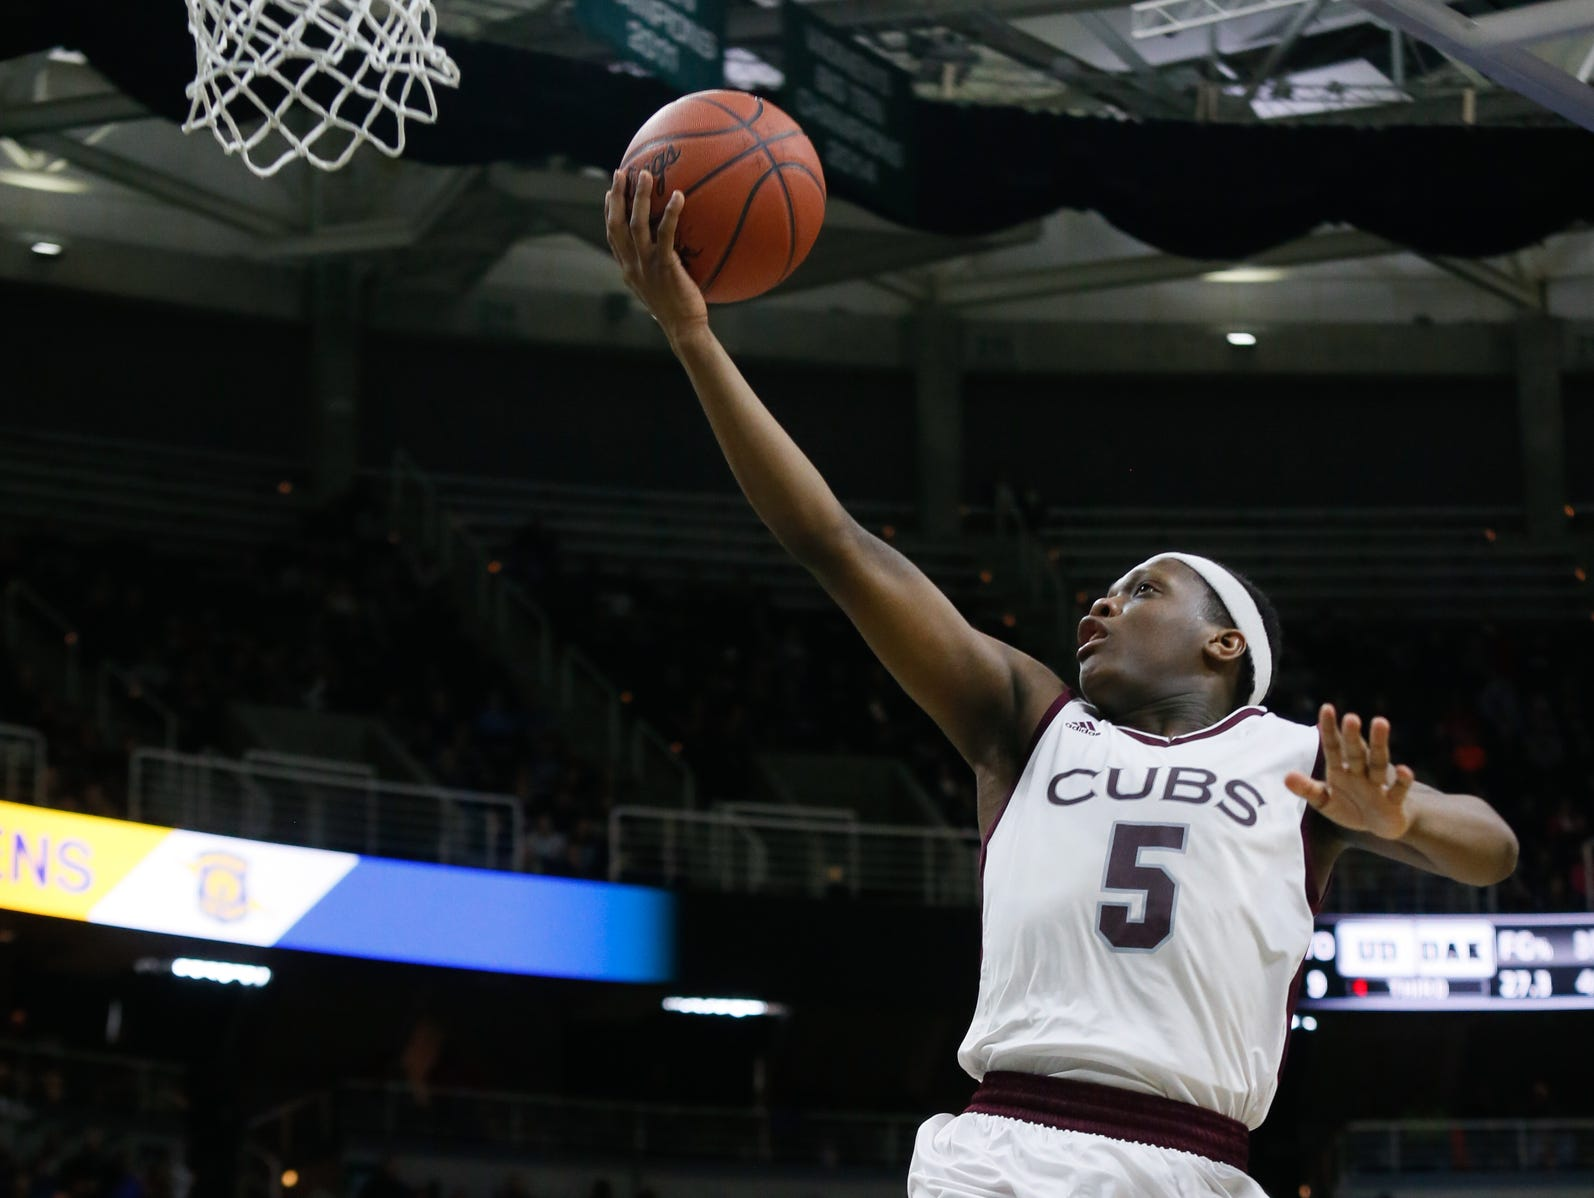 U-D Jesuit's Cassius Winston makes a lay-up against Macomb Dakota during an MHSAA boys basketball Class A semifinal Friday, March 25, 2016, in East Lansing. U-D won, 72-51.